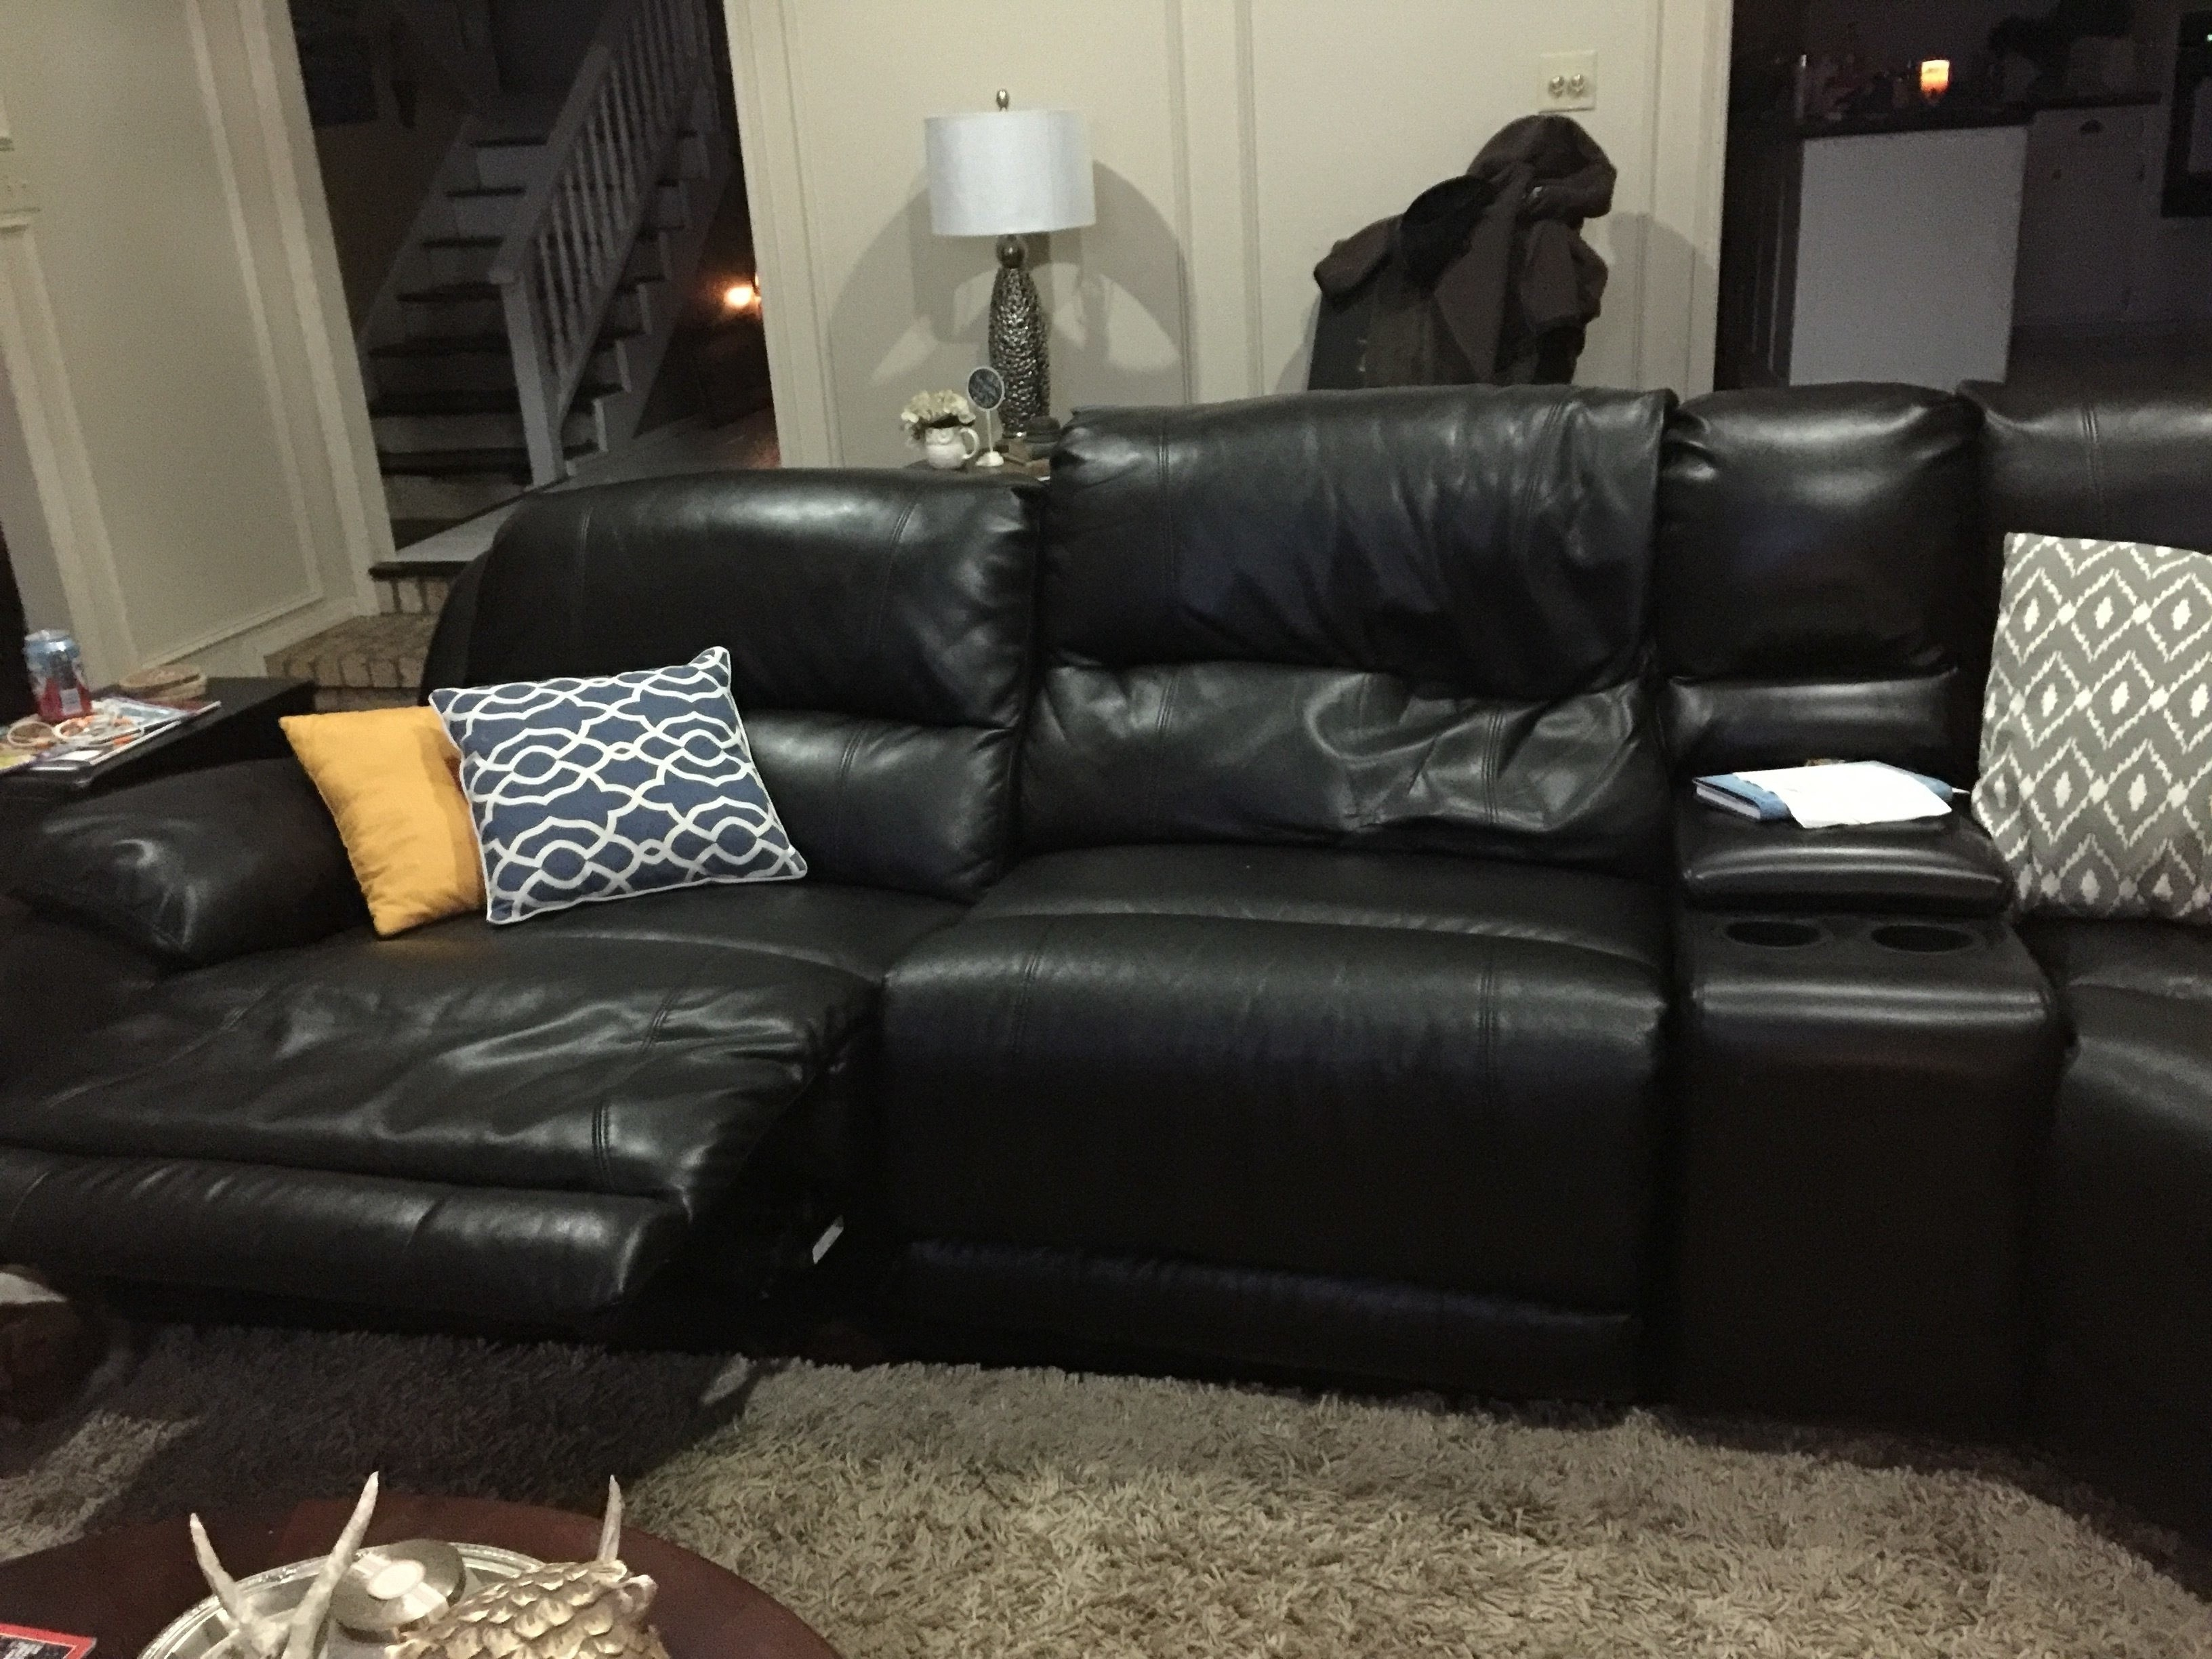 Craigslist Dallas Texas Furniture With Regard To Well Liked Dallas Texas Sectional Sofas (View 3 of 20)